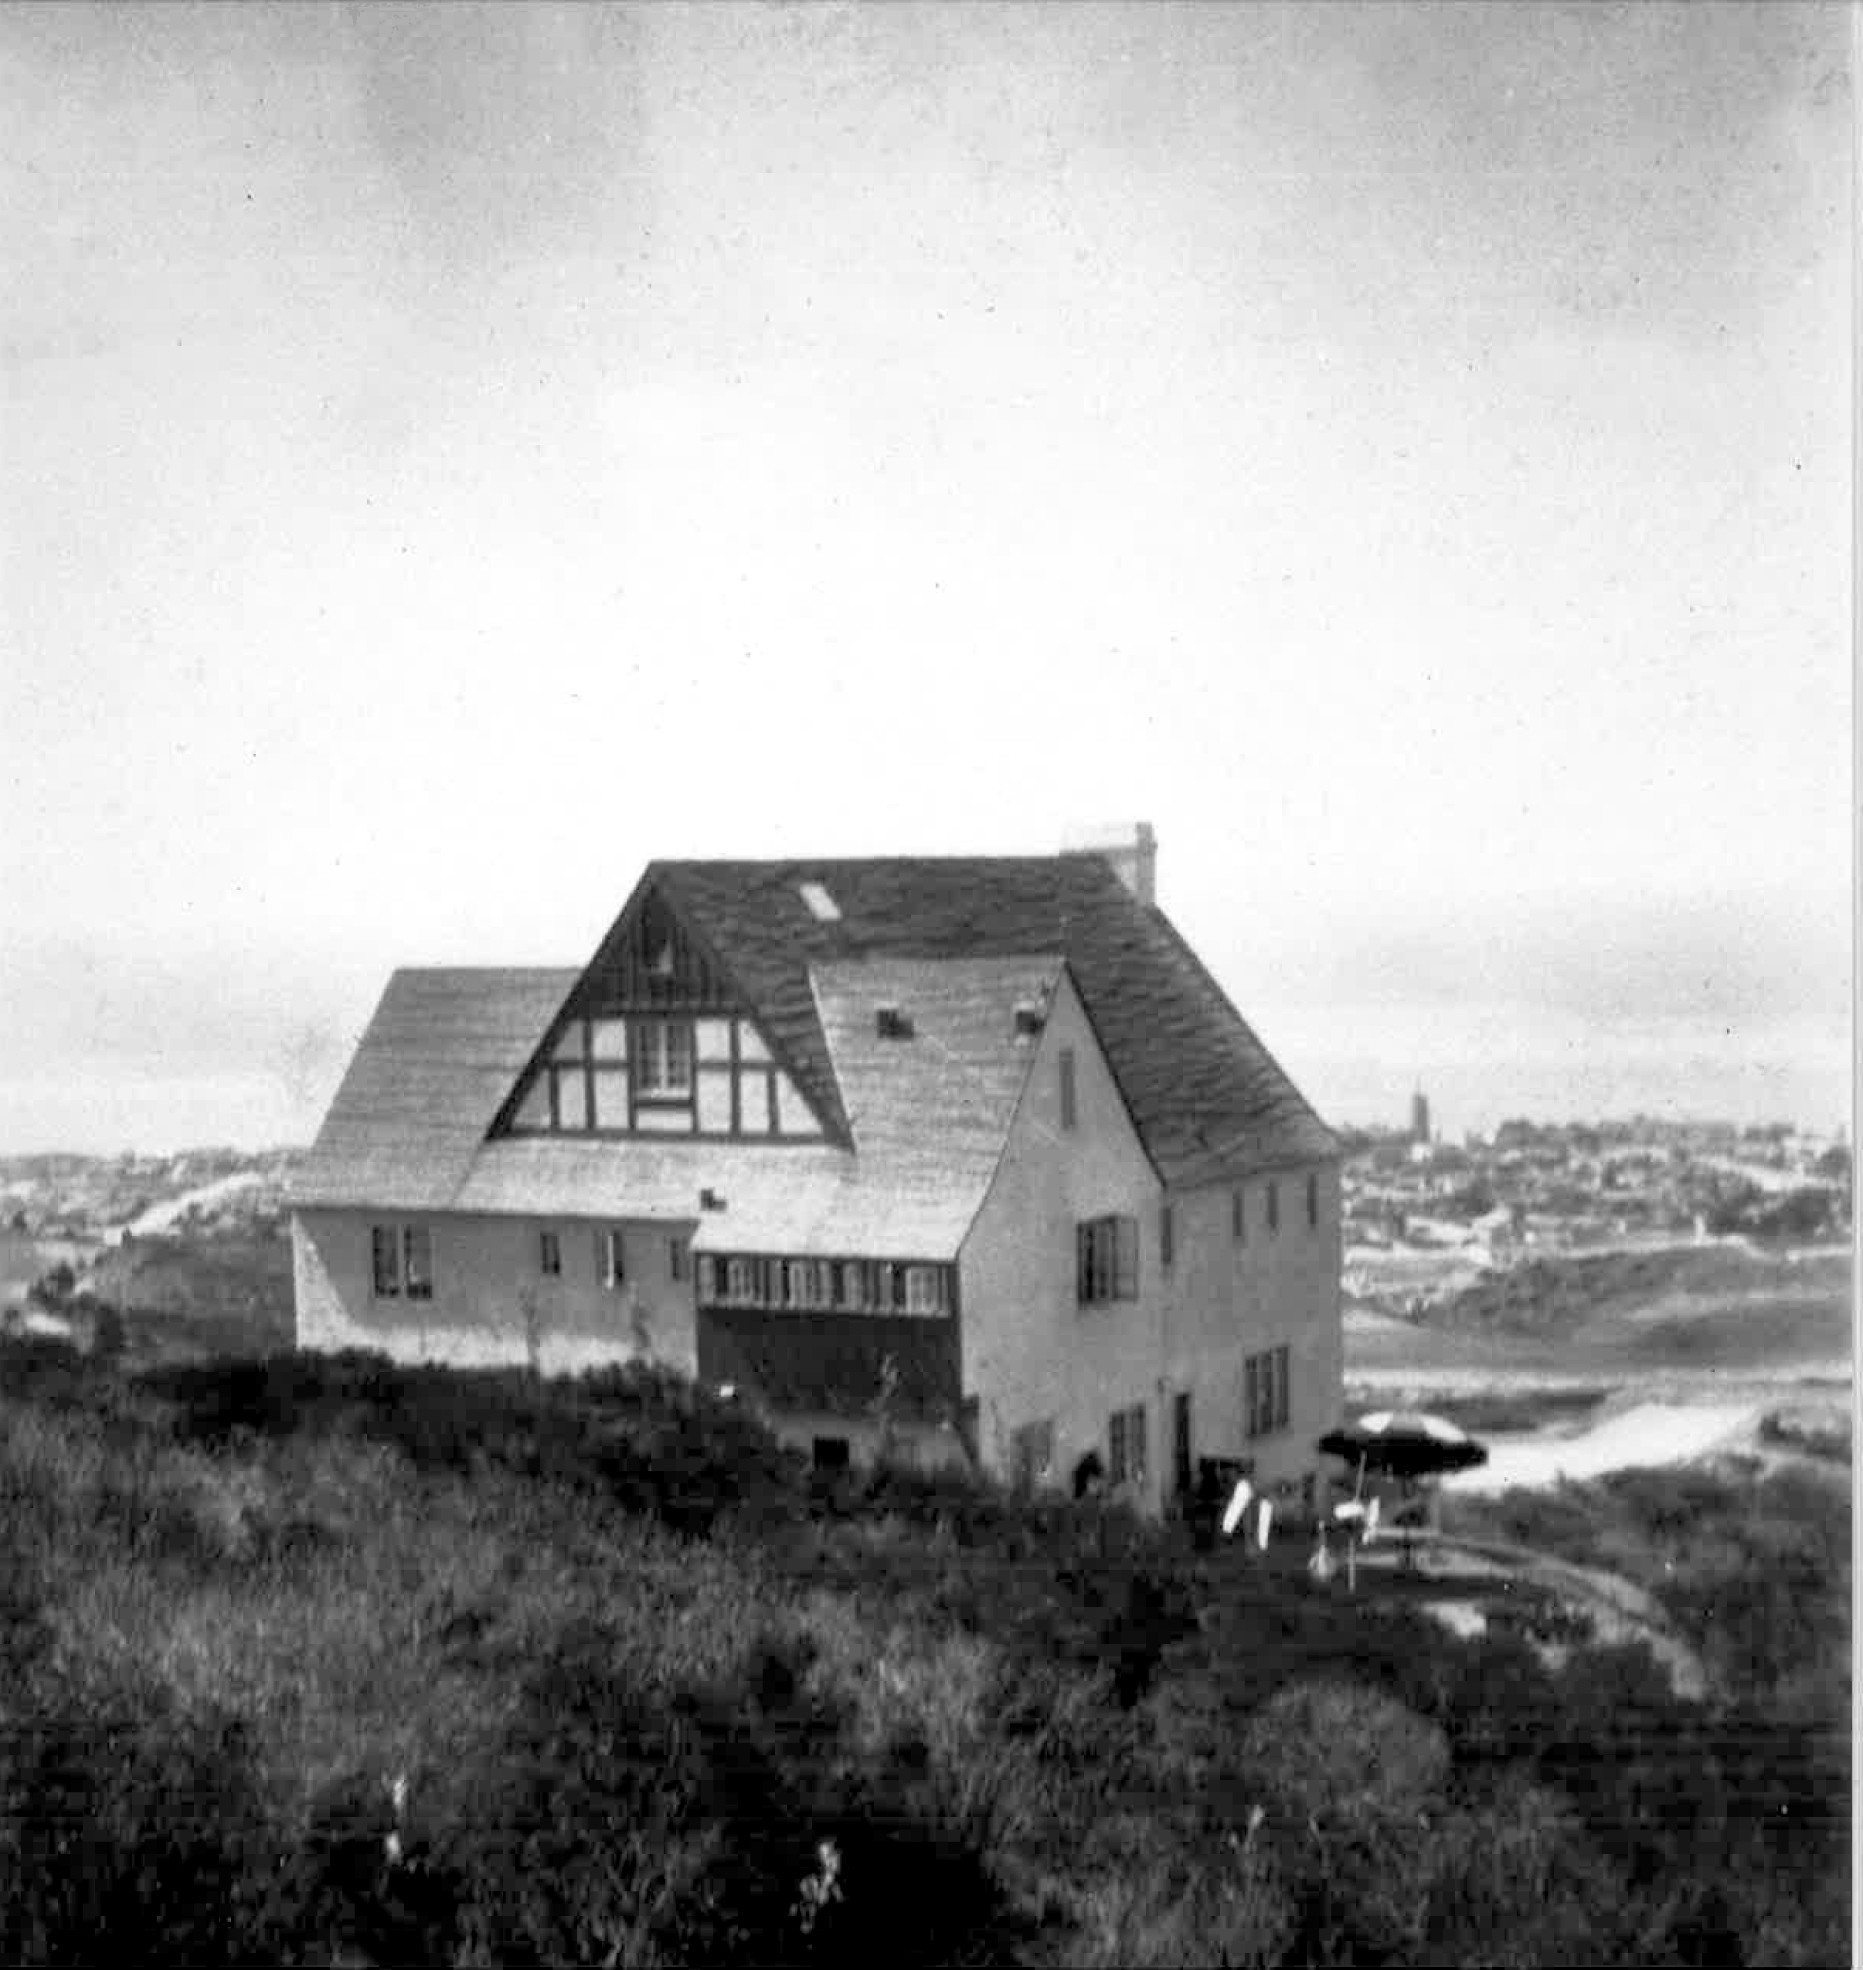 In 1929, Dewhurst & Associates built their first home in La Jolla--it is still standing today.